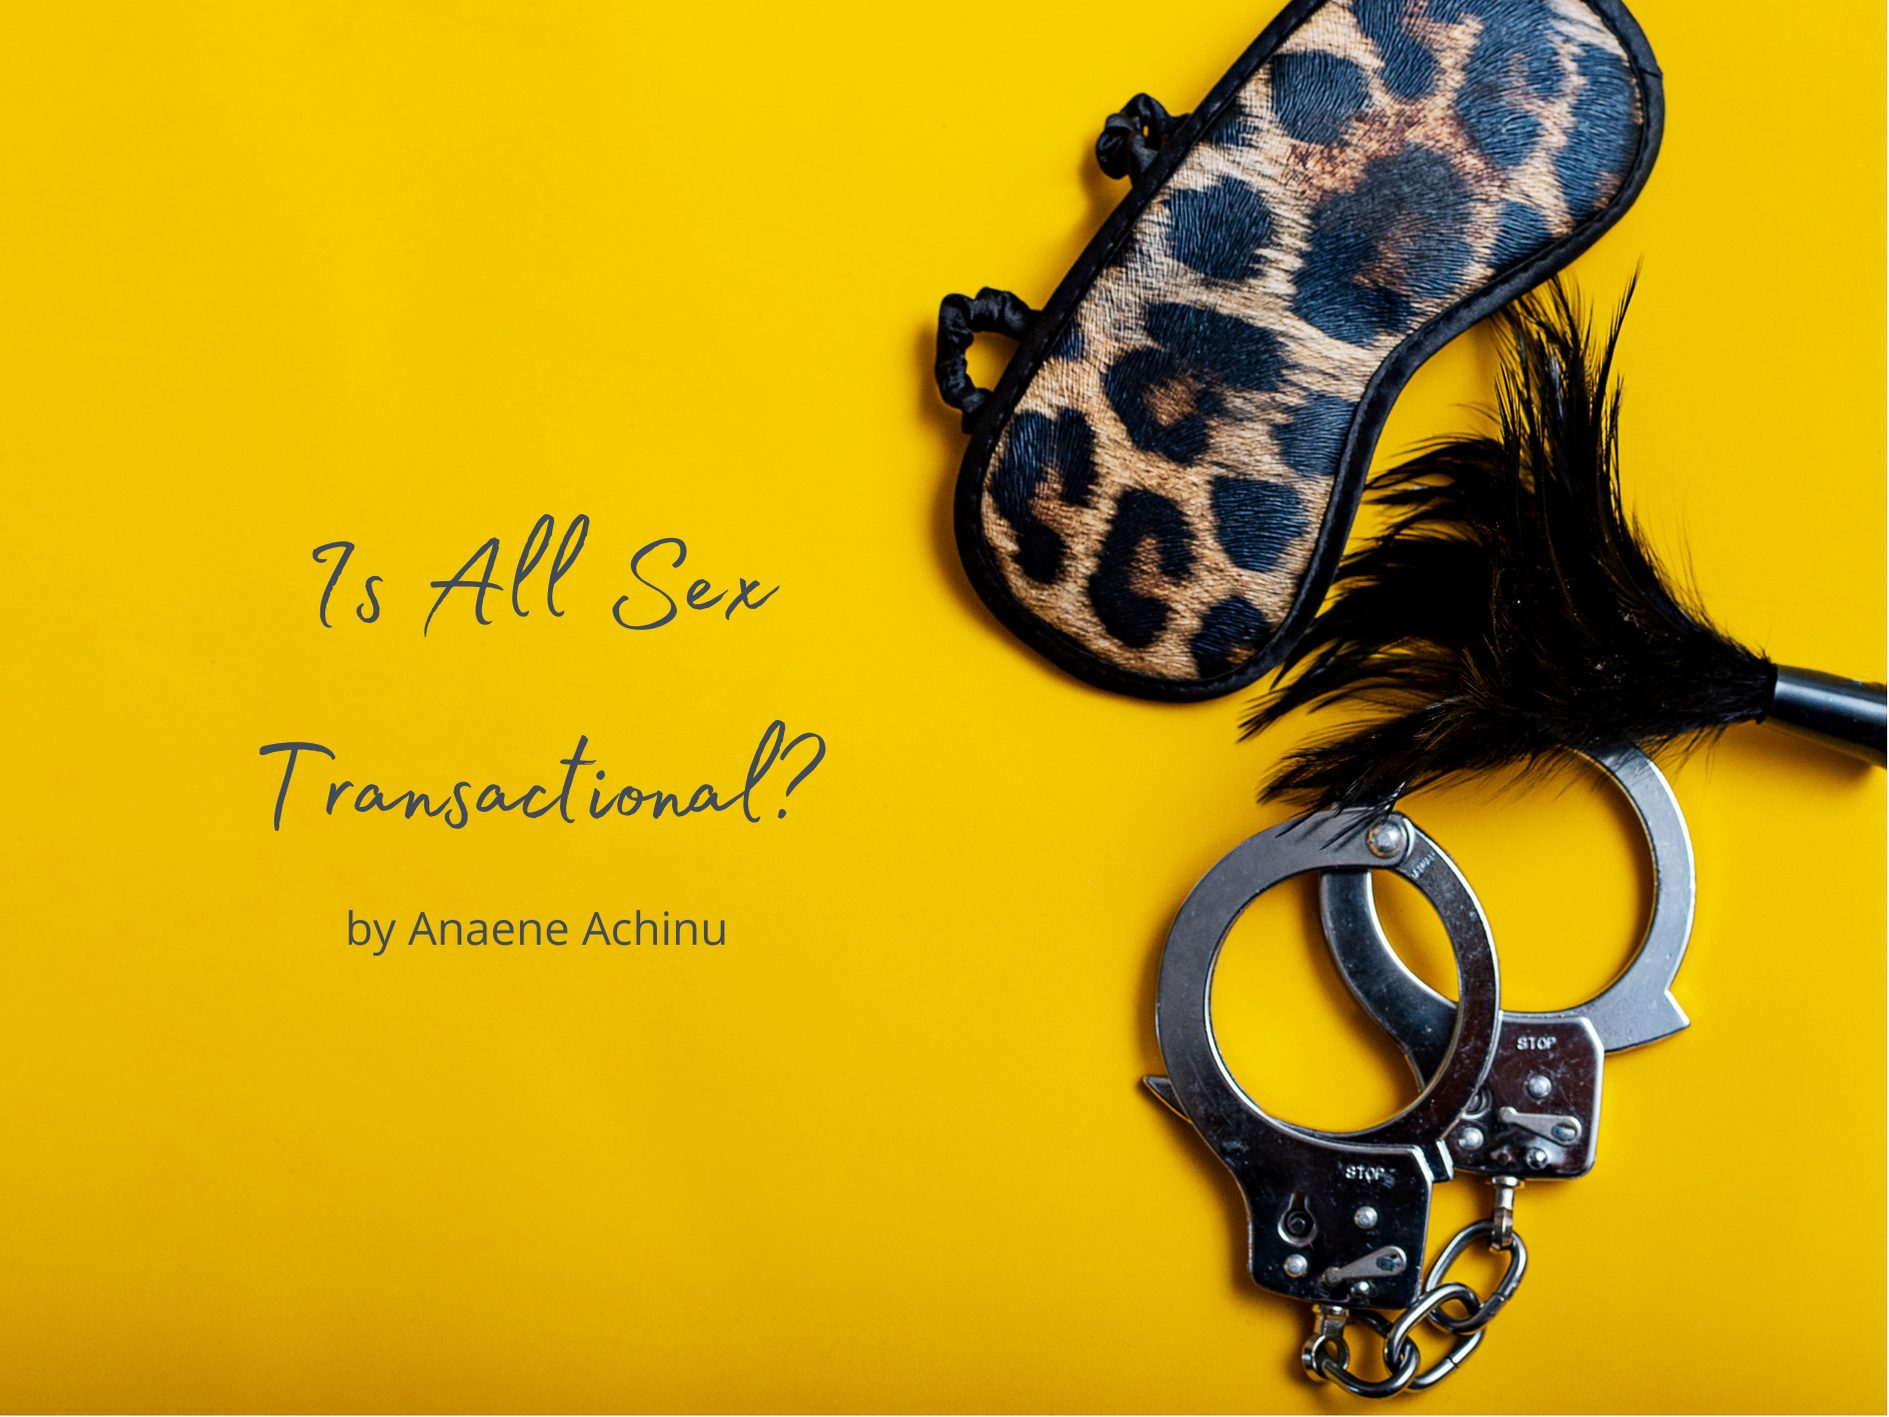 [Guest Post] Is All Sex Transactional? By Anaene Achinu